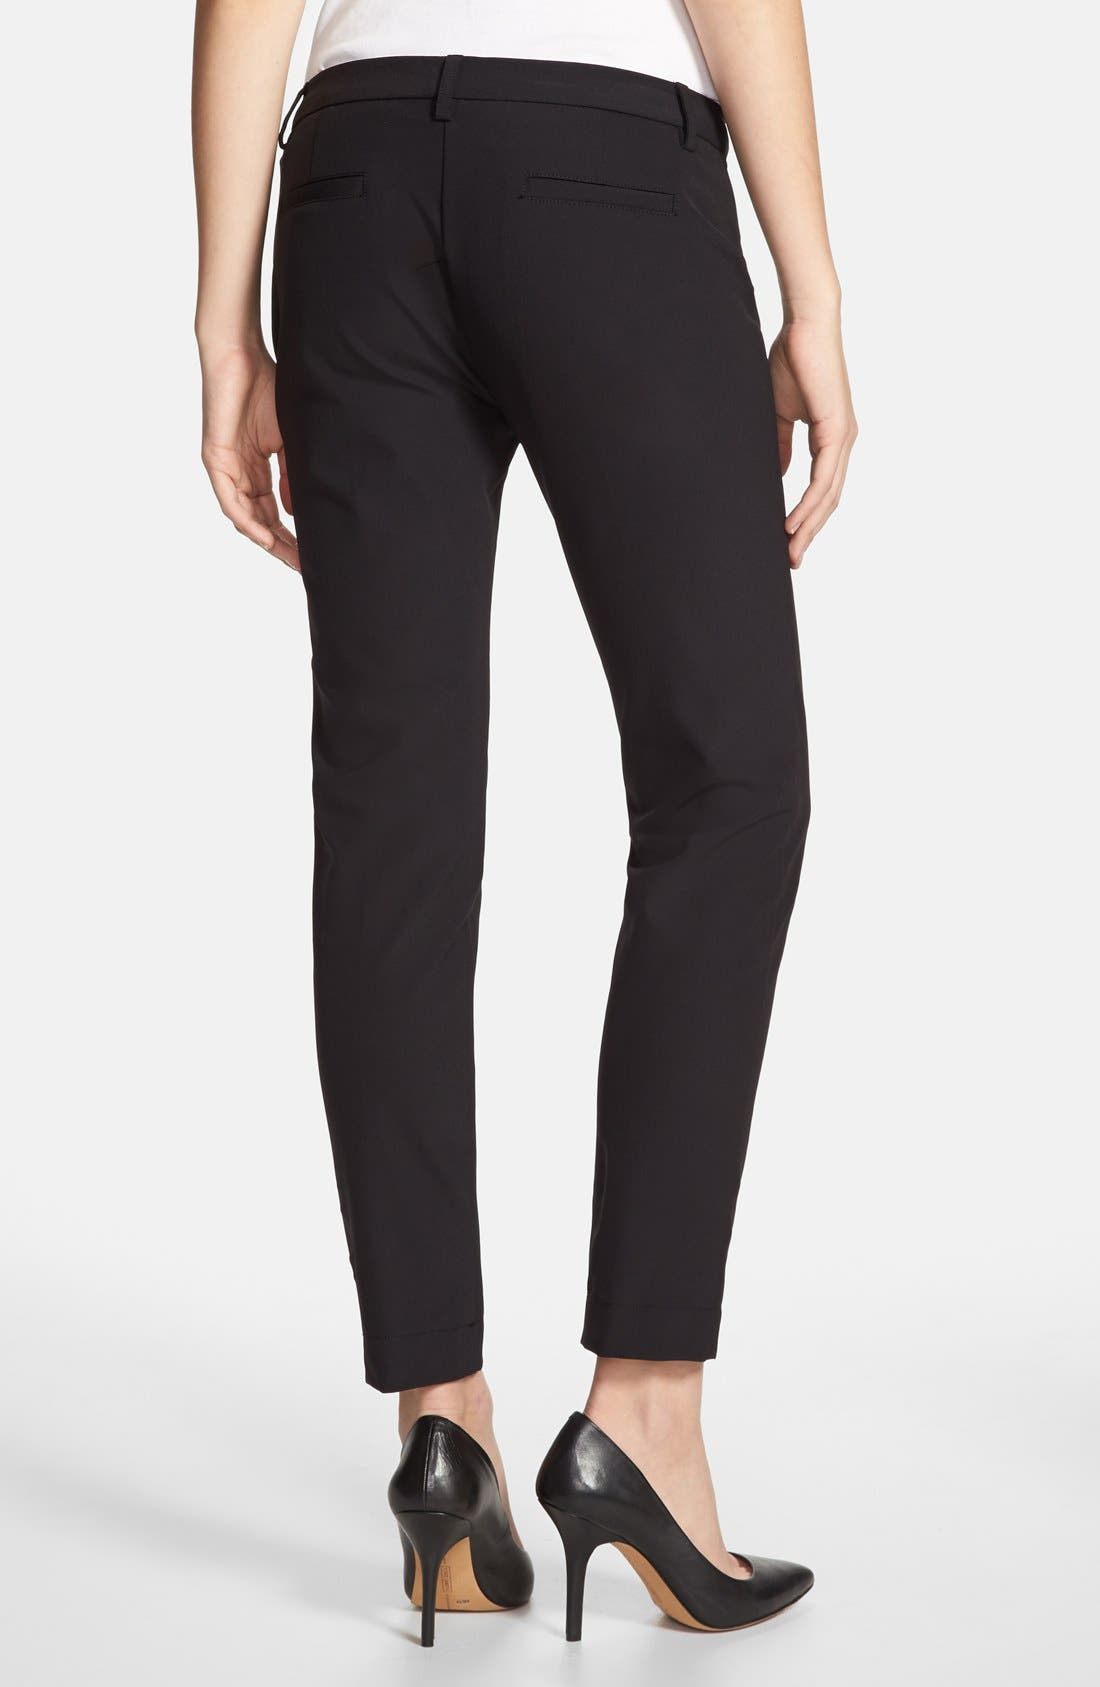 Alternate Image 2  - Kenneth Cole New York 'Alison' Zip Pocket Pants (Regular & Petite)